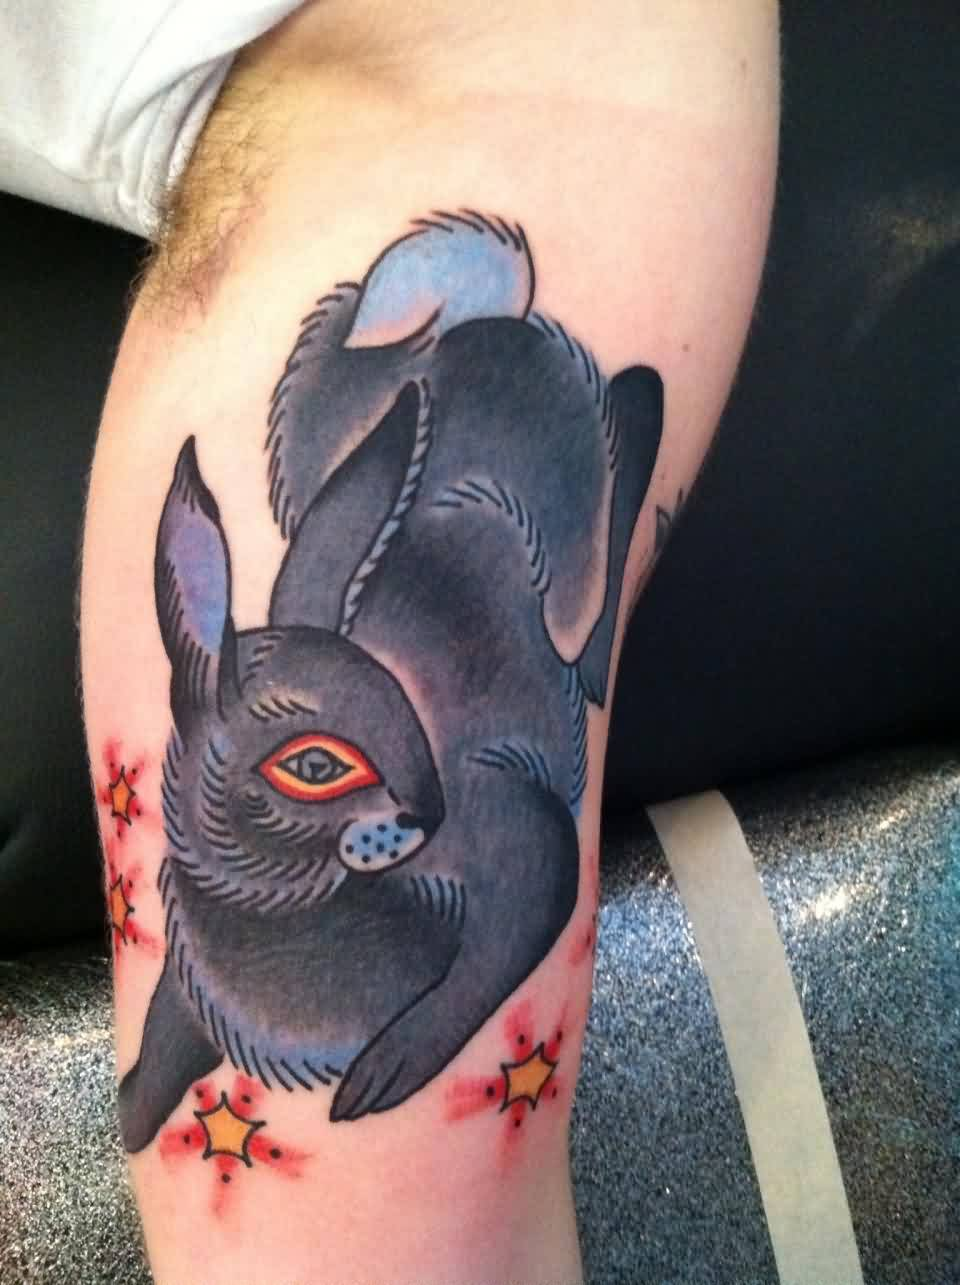 Black Rabbit And Tiny Star Tattoos On Arm